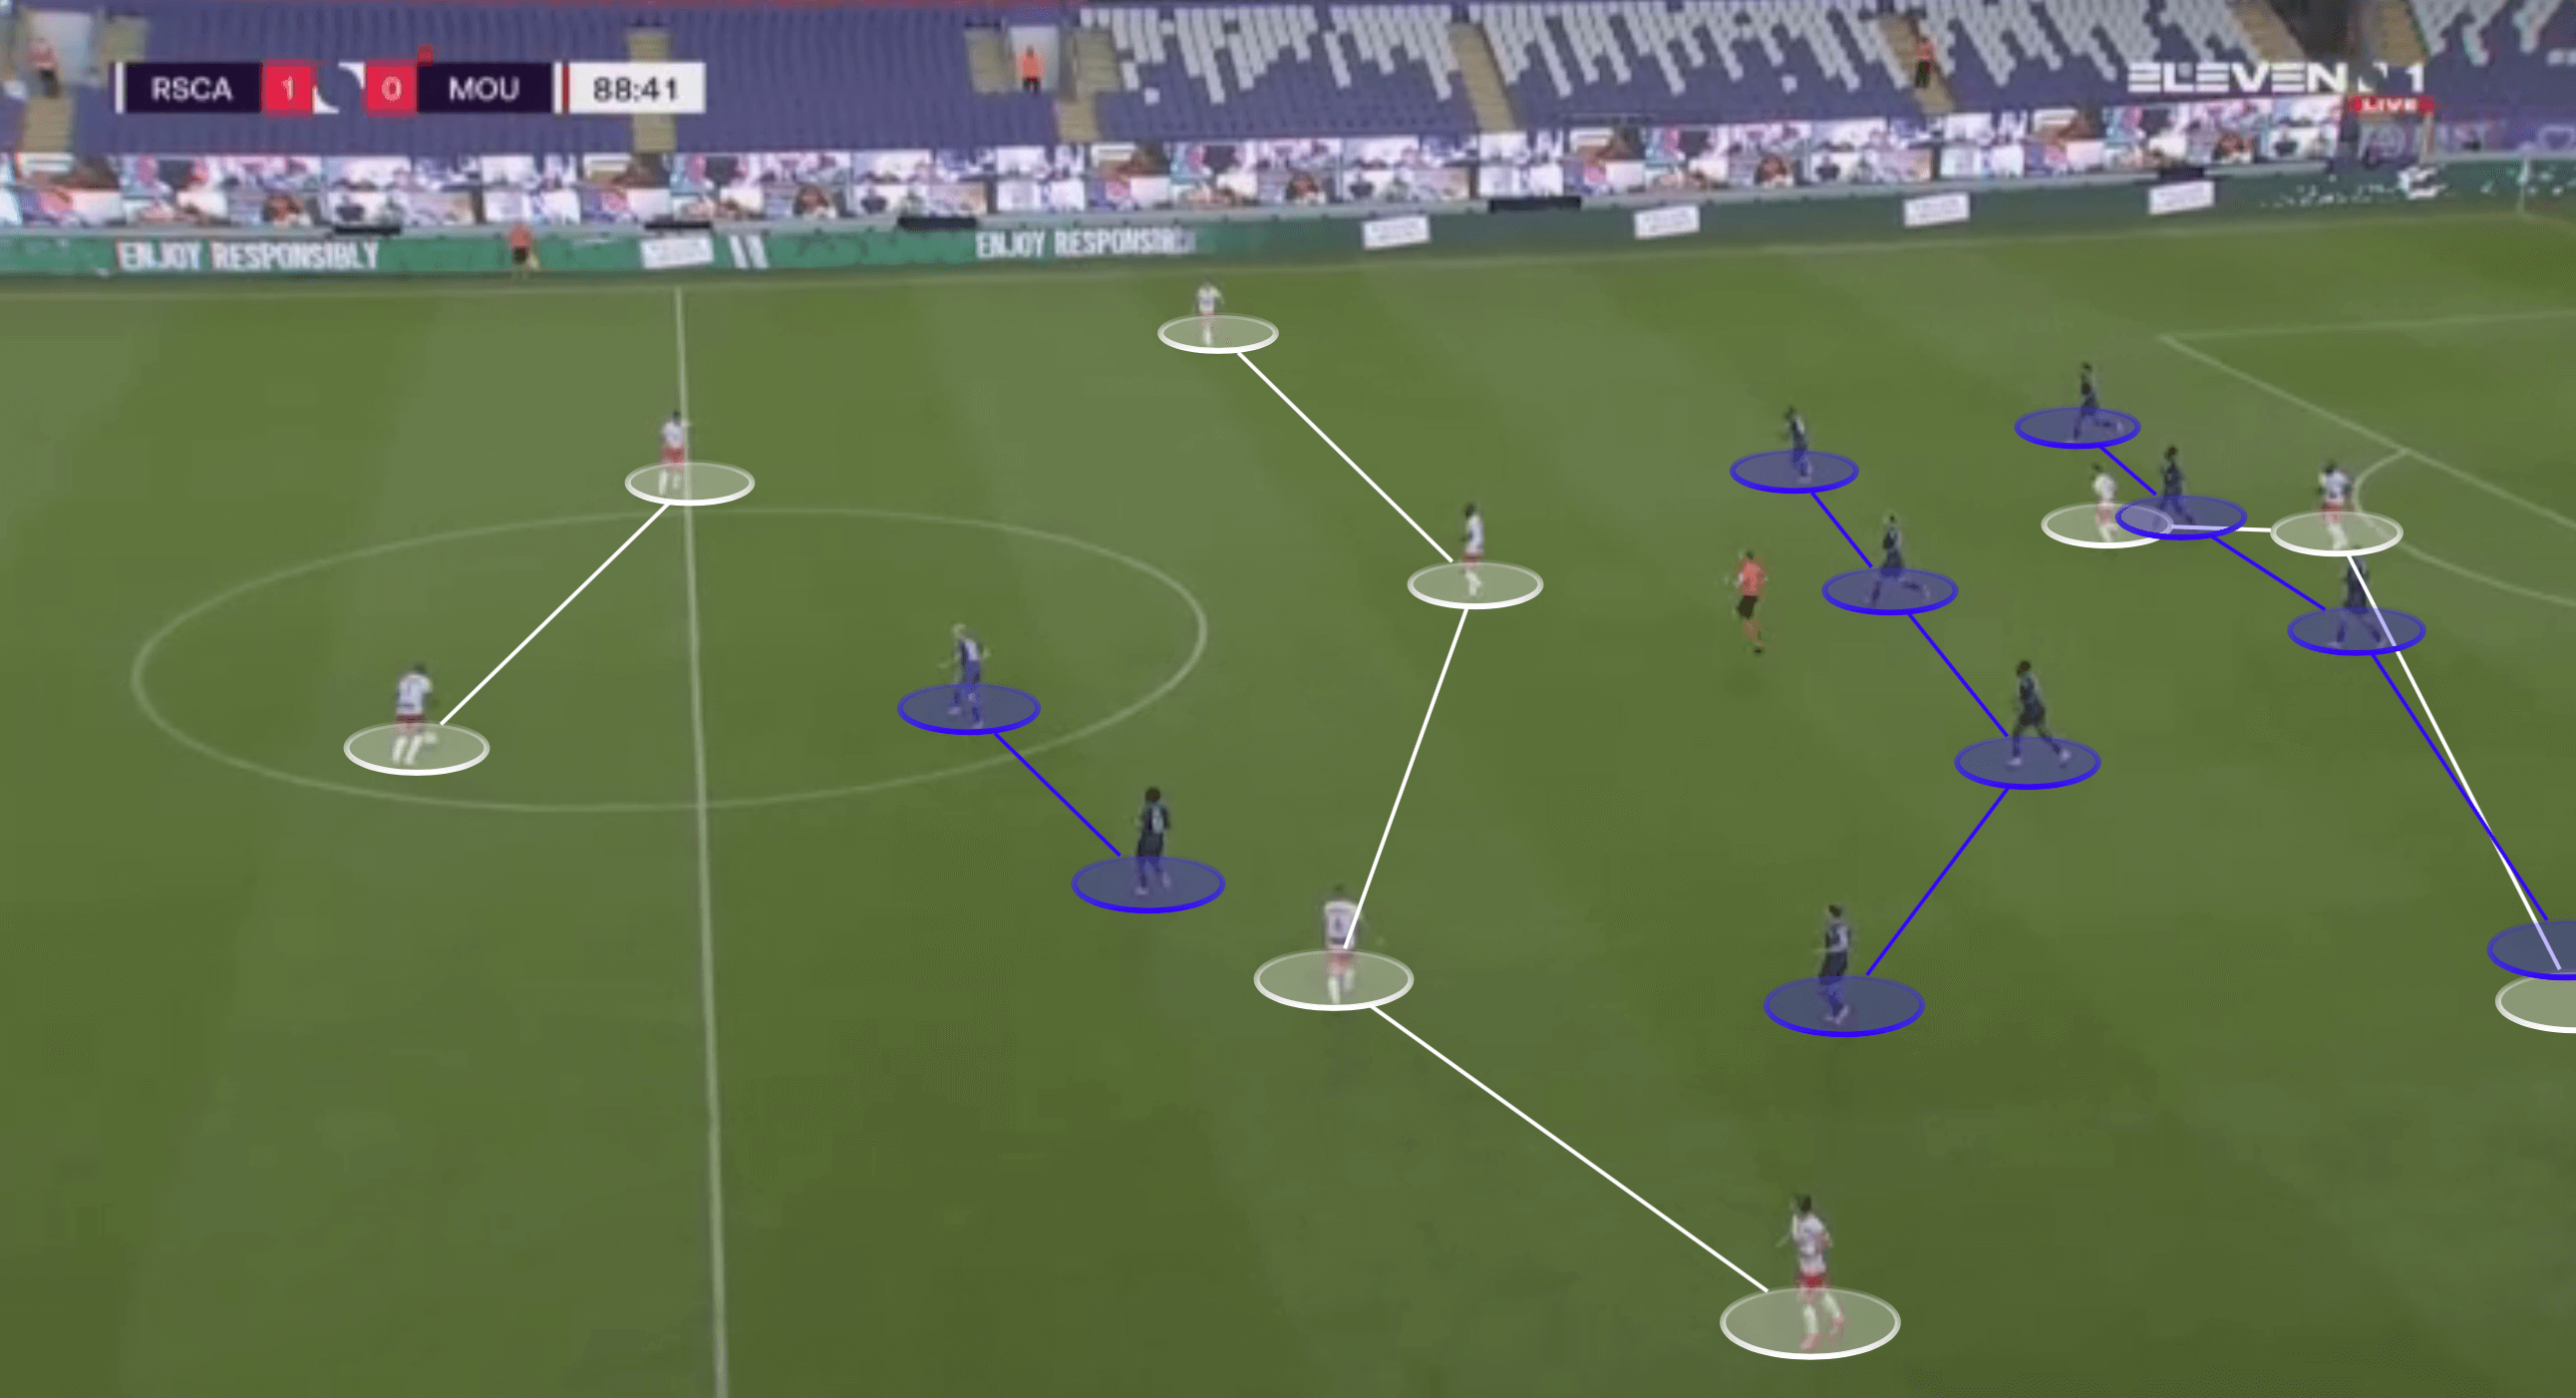 Belgian First Division A 2020/21: Anderlecht vs Royal Excel Mouscron - tactical analysis tactics